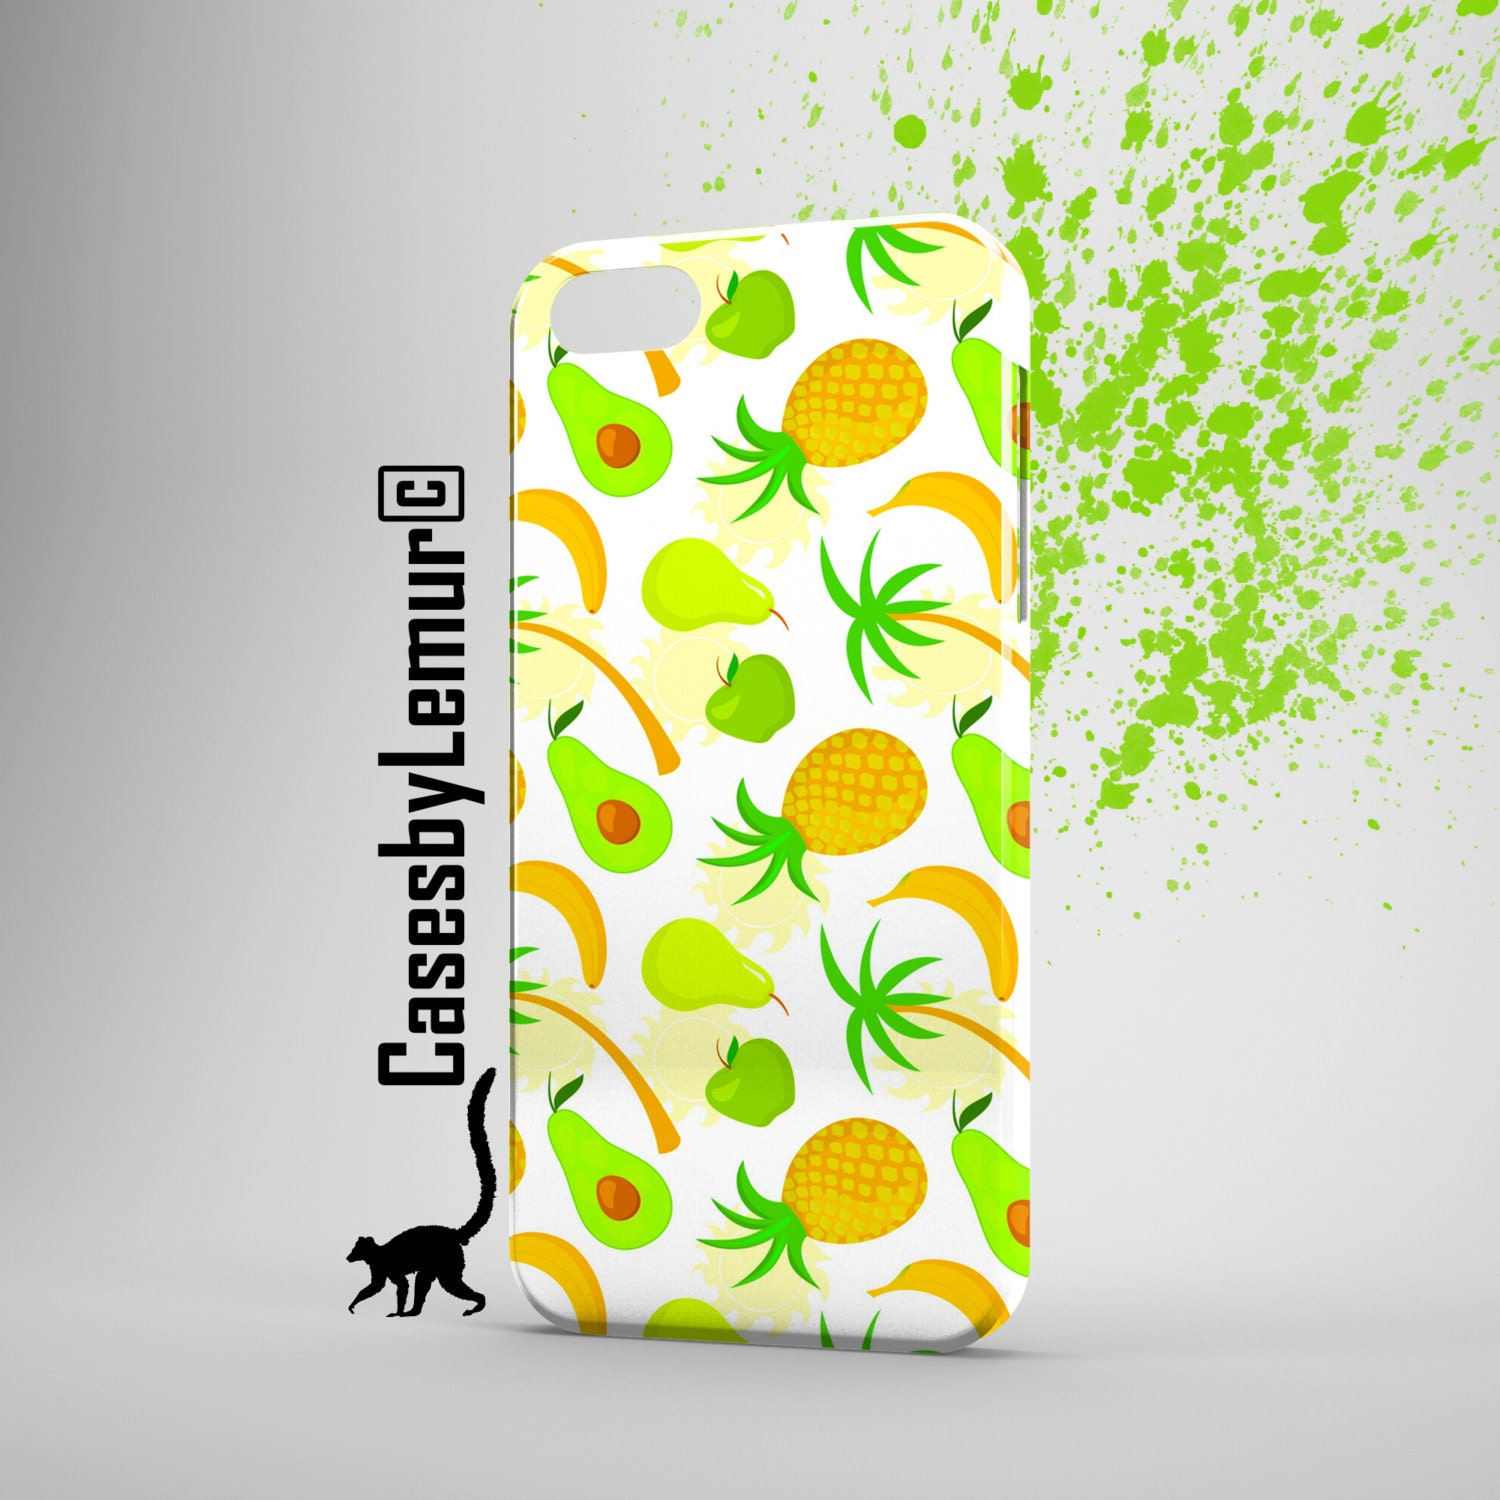 Fruits Pattern Iphone case Iphone 6 case Iphone 5s by LemurCases